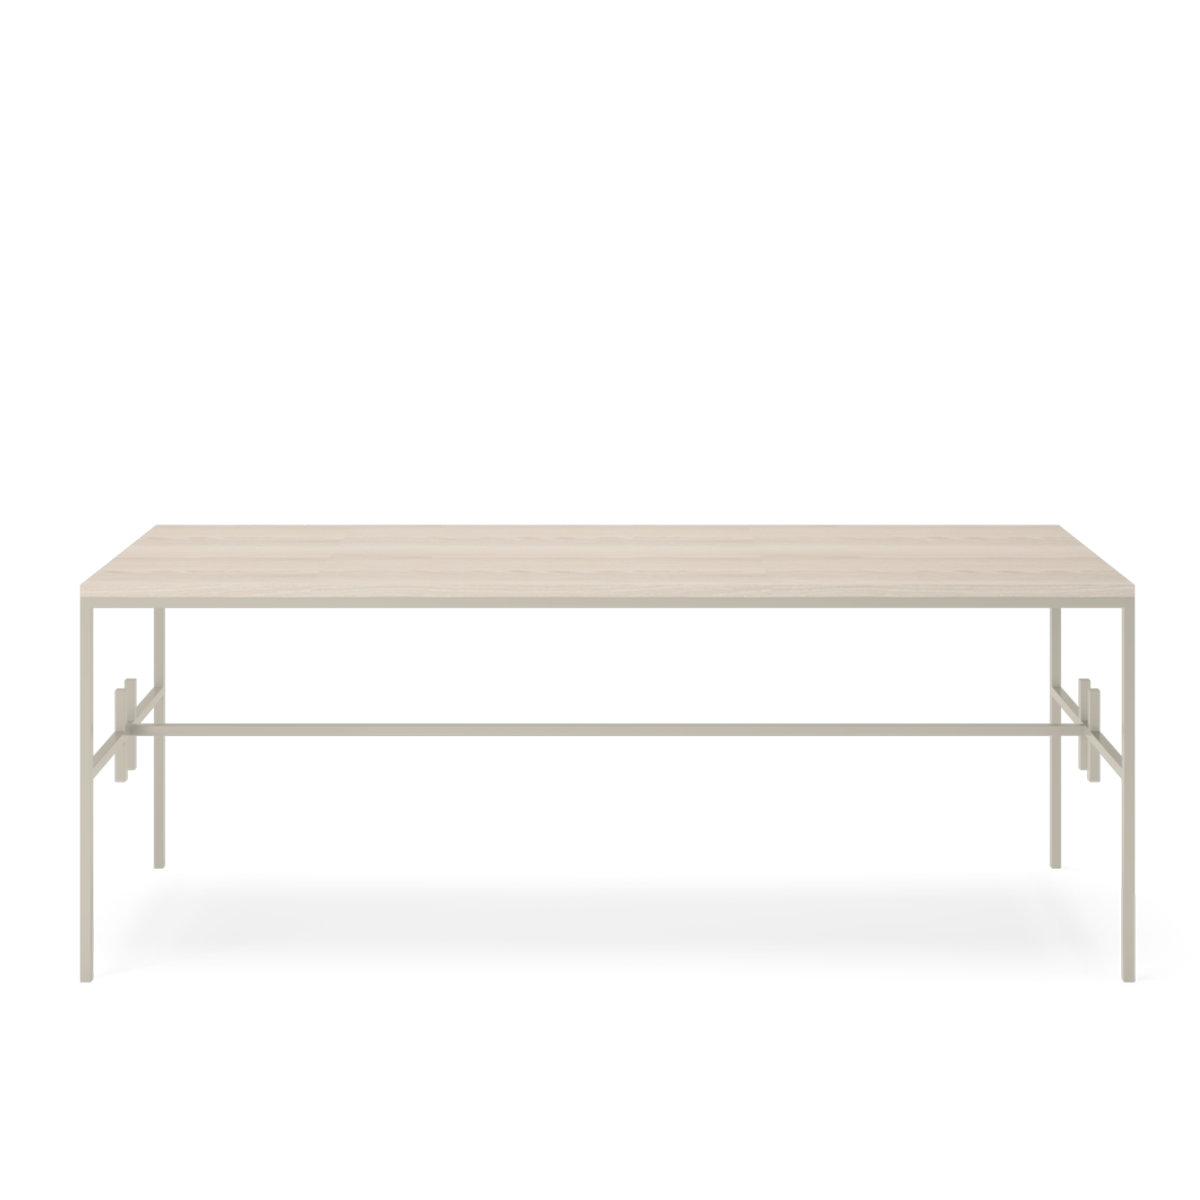 H-table - Efva Attling - The Högdalen collection